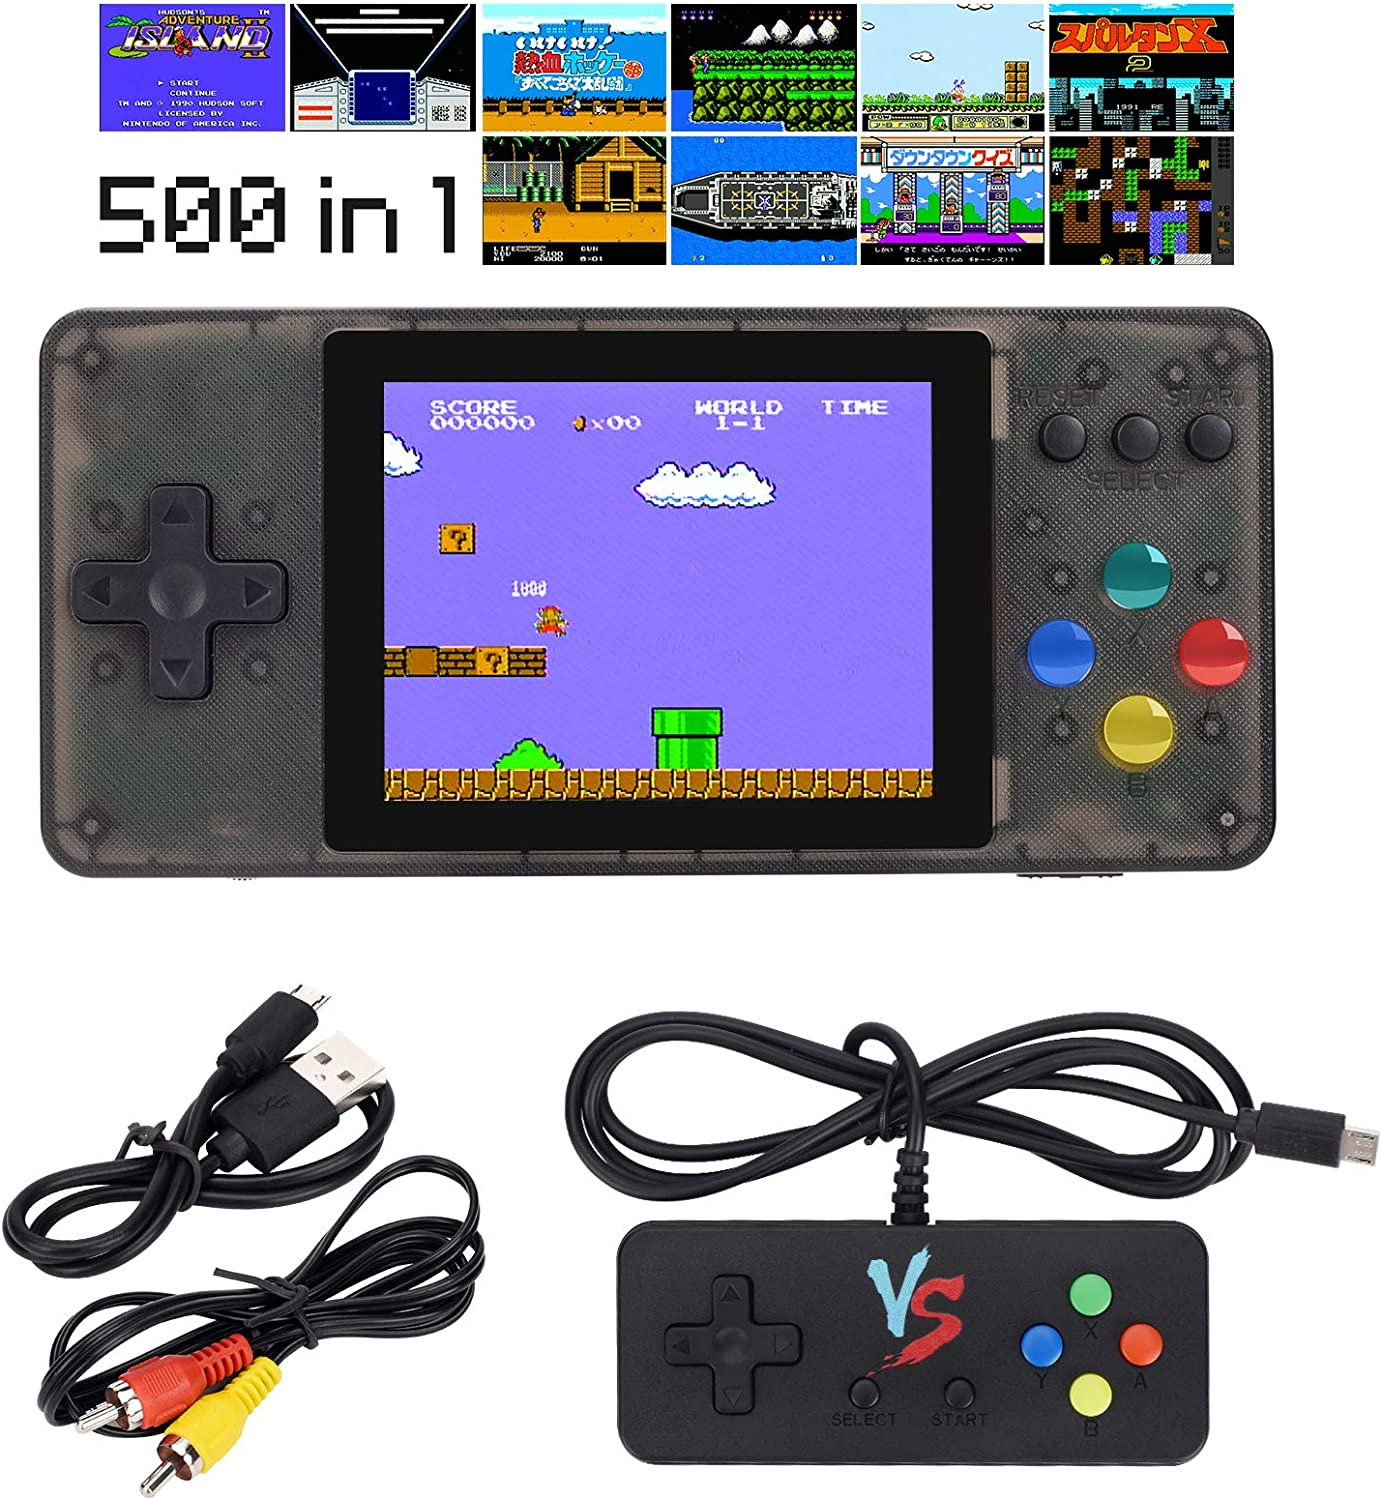 HAndPE Handheld Game Console, Retro Mini Game Player with 500 Classical FC Games 3-Inch Color Screen Support for Connecting TV & Two Players 1020mAh Rechargeable Battery Present for Kids and Adult